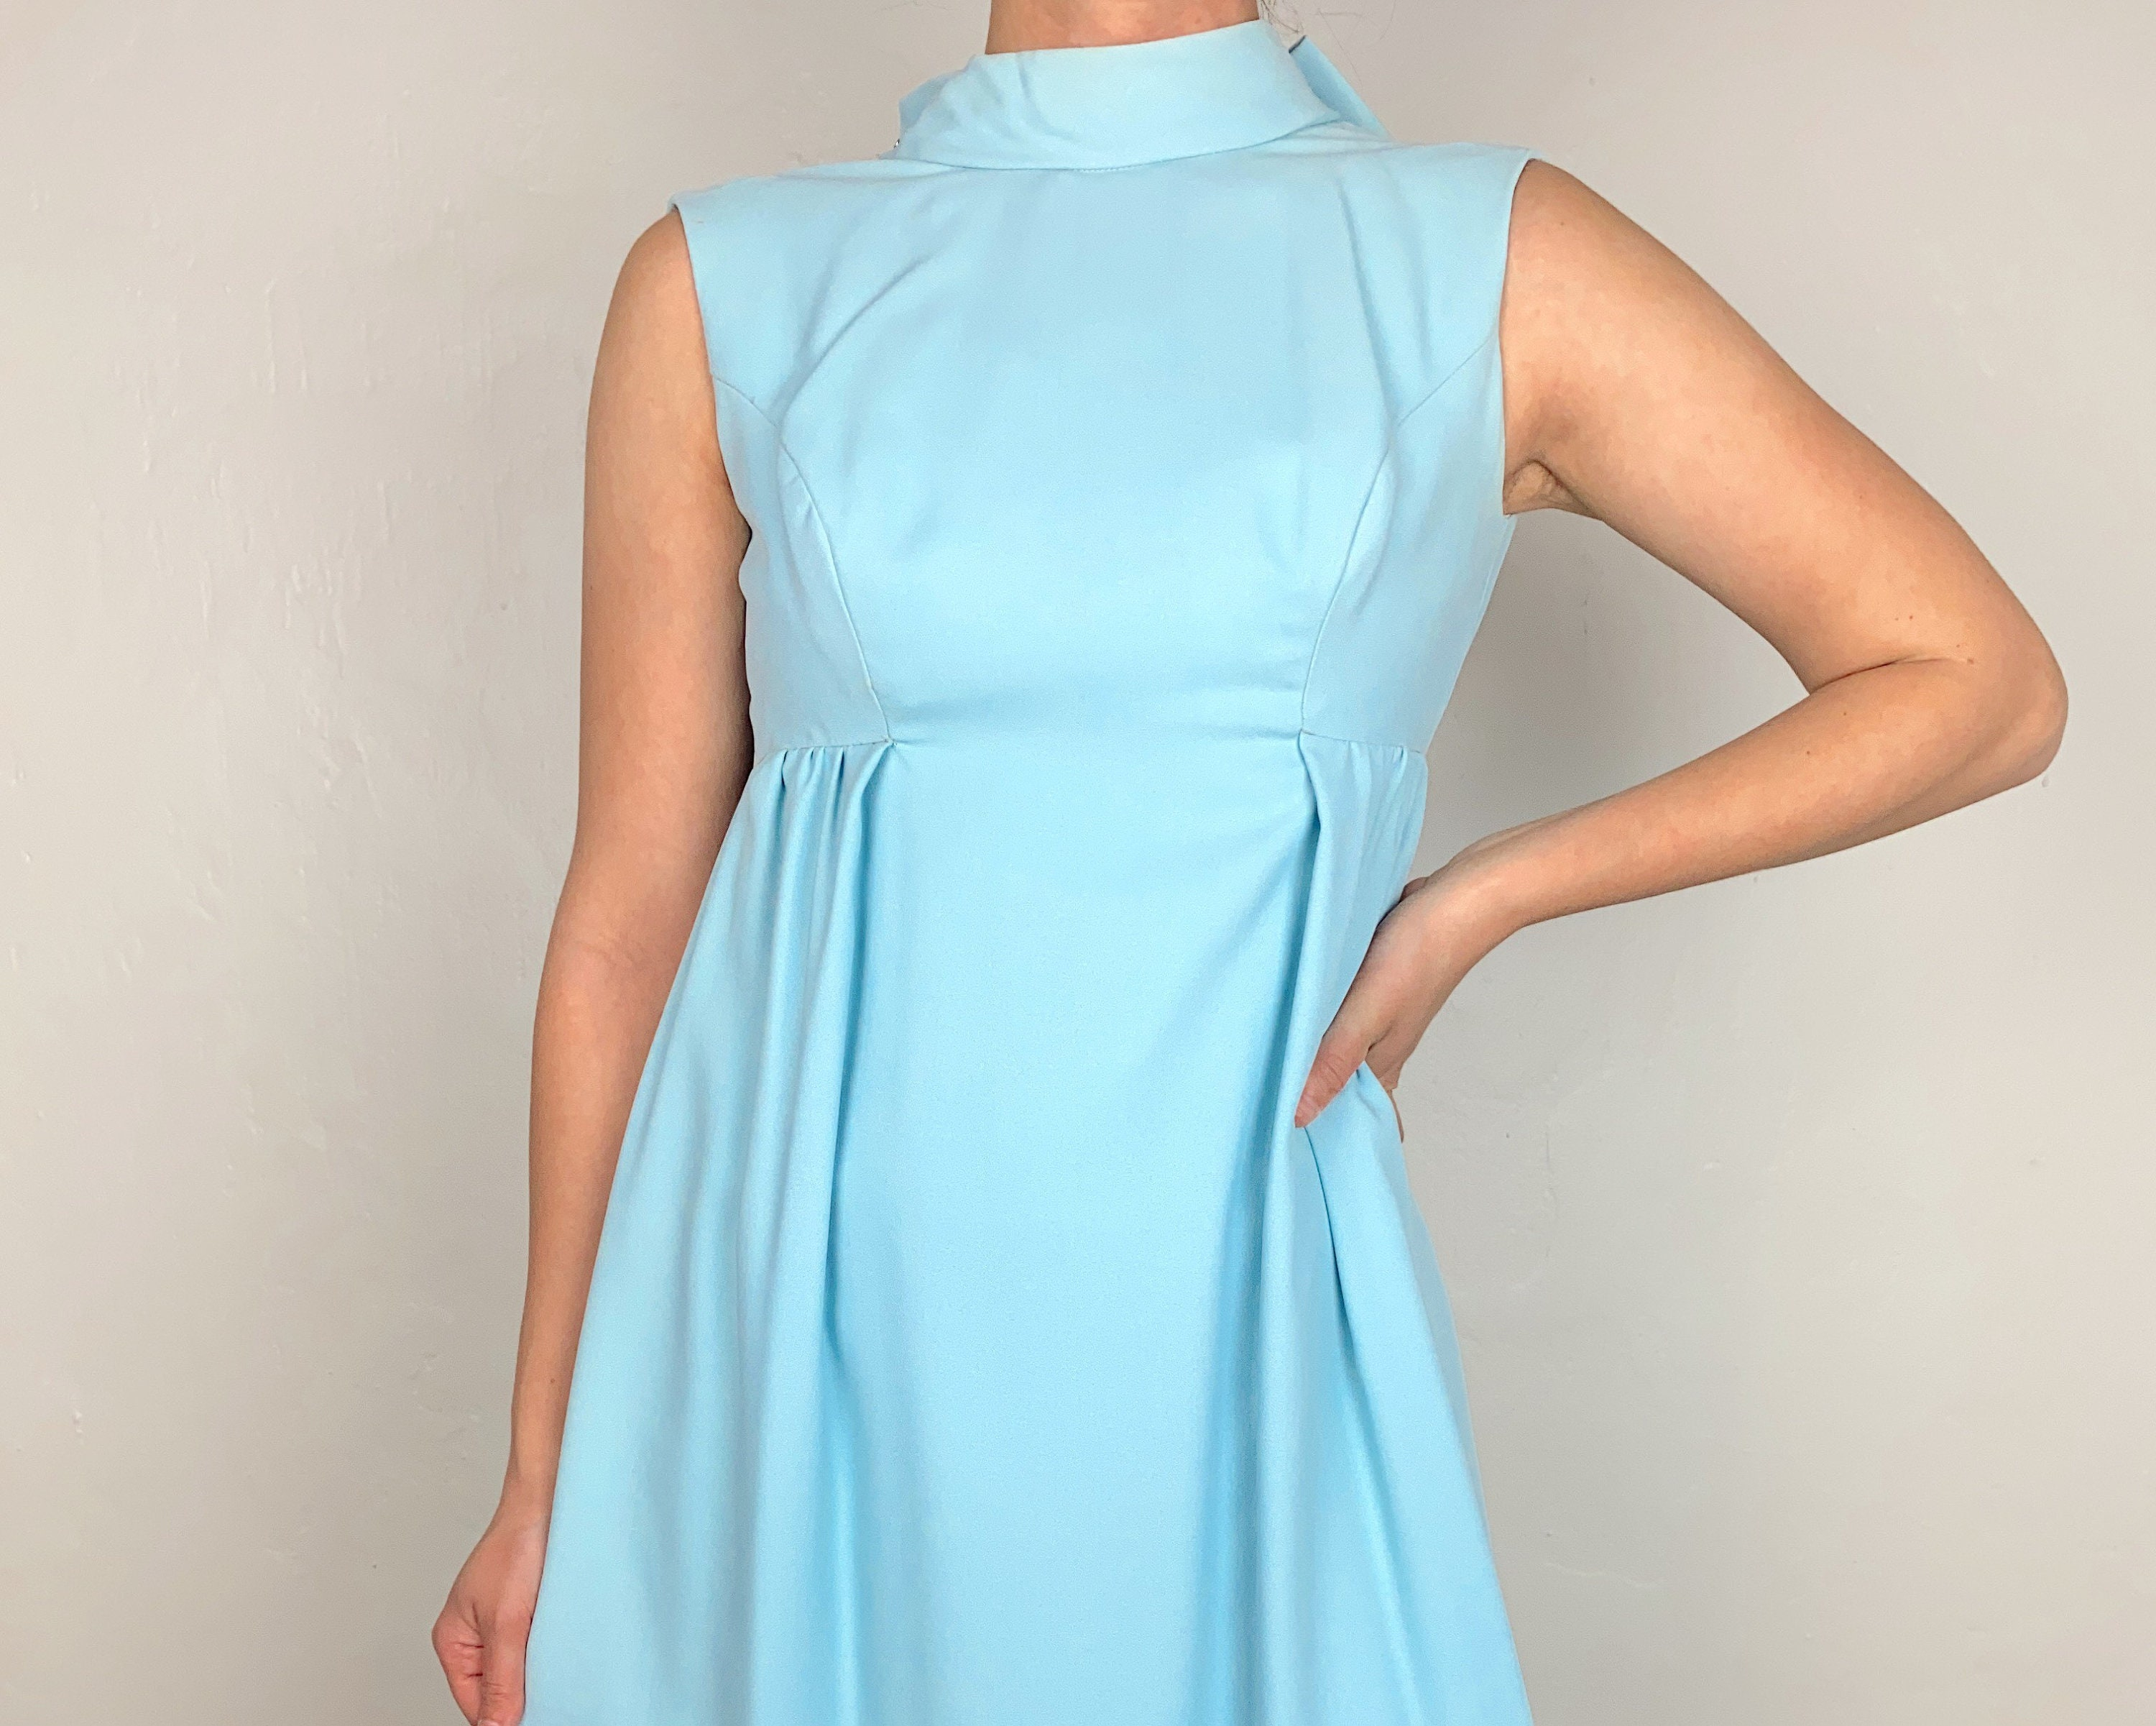 Vintage Scarf Styles -1920s to 1960s Vintage 60S Baby Blue Rayon Maxi Dress with Bowtie On The Back $0.00 AT vintagedancer.com